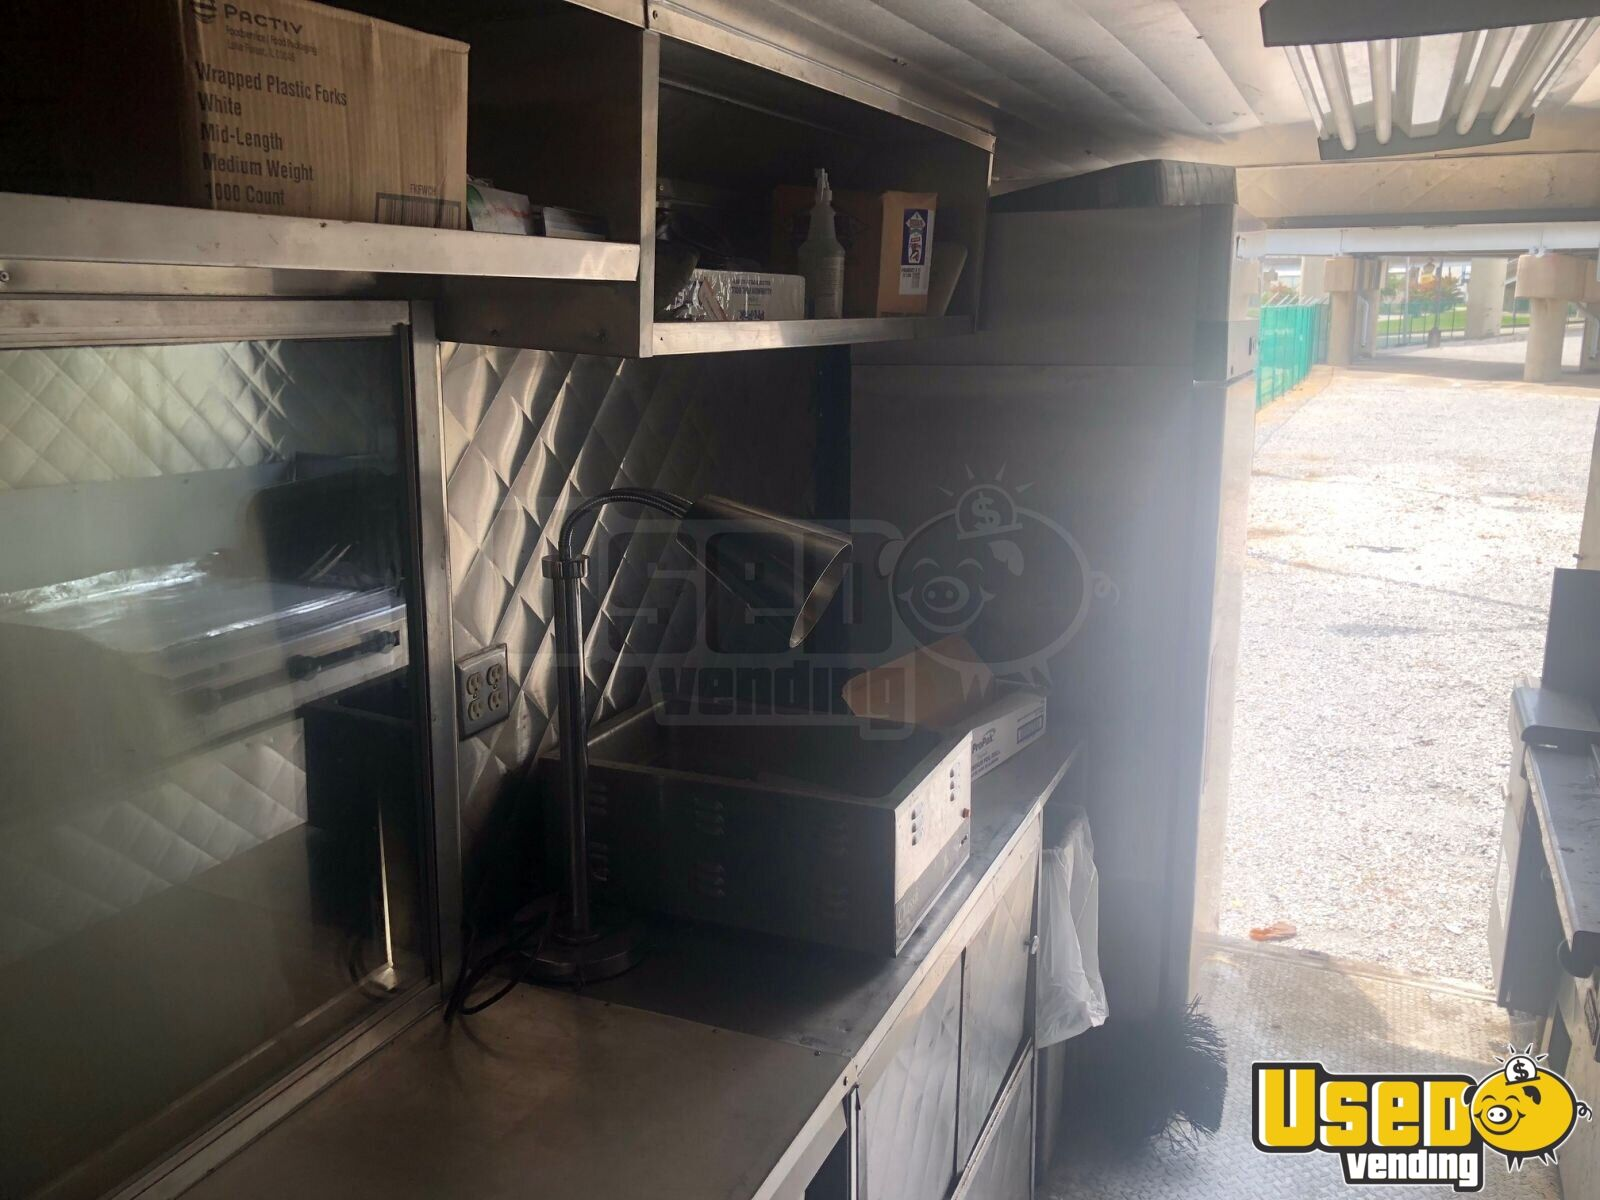 1992 P30 Step Van Kitchen Food Truck All-purpose Food Truck Exterior Customer Counter Louisiana Diesel Engine for Sale - 8